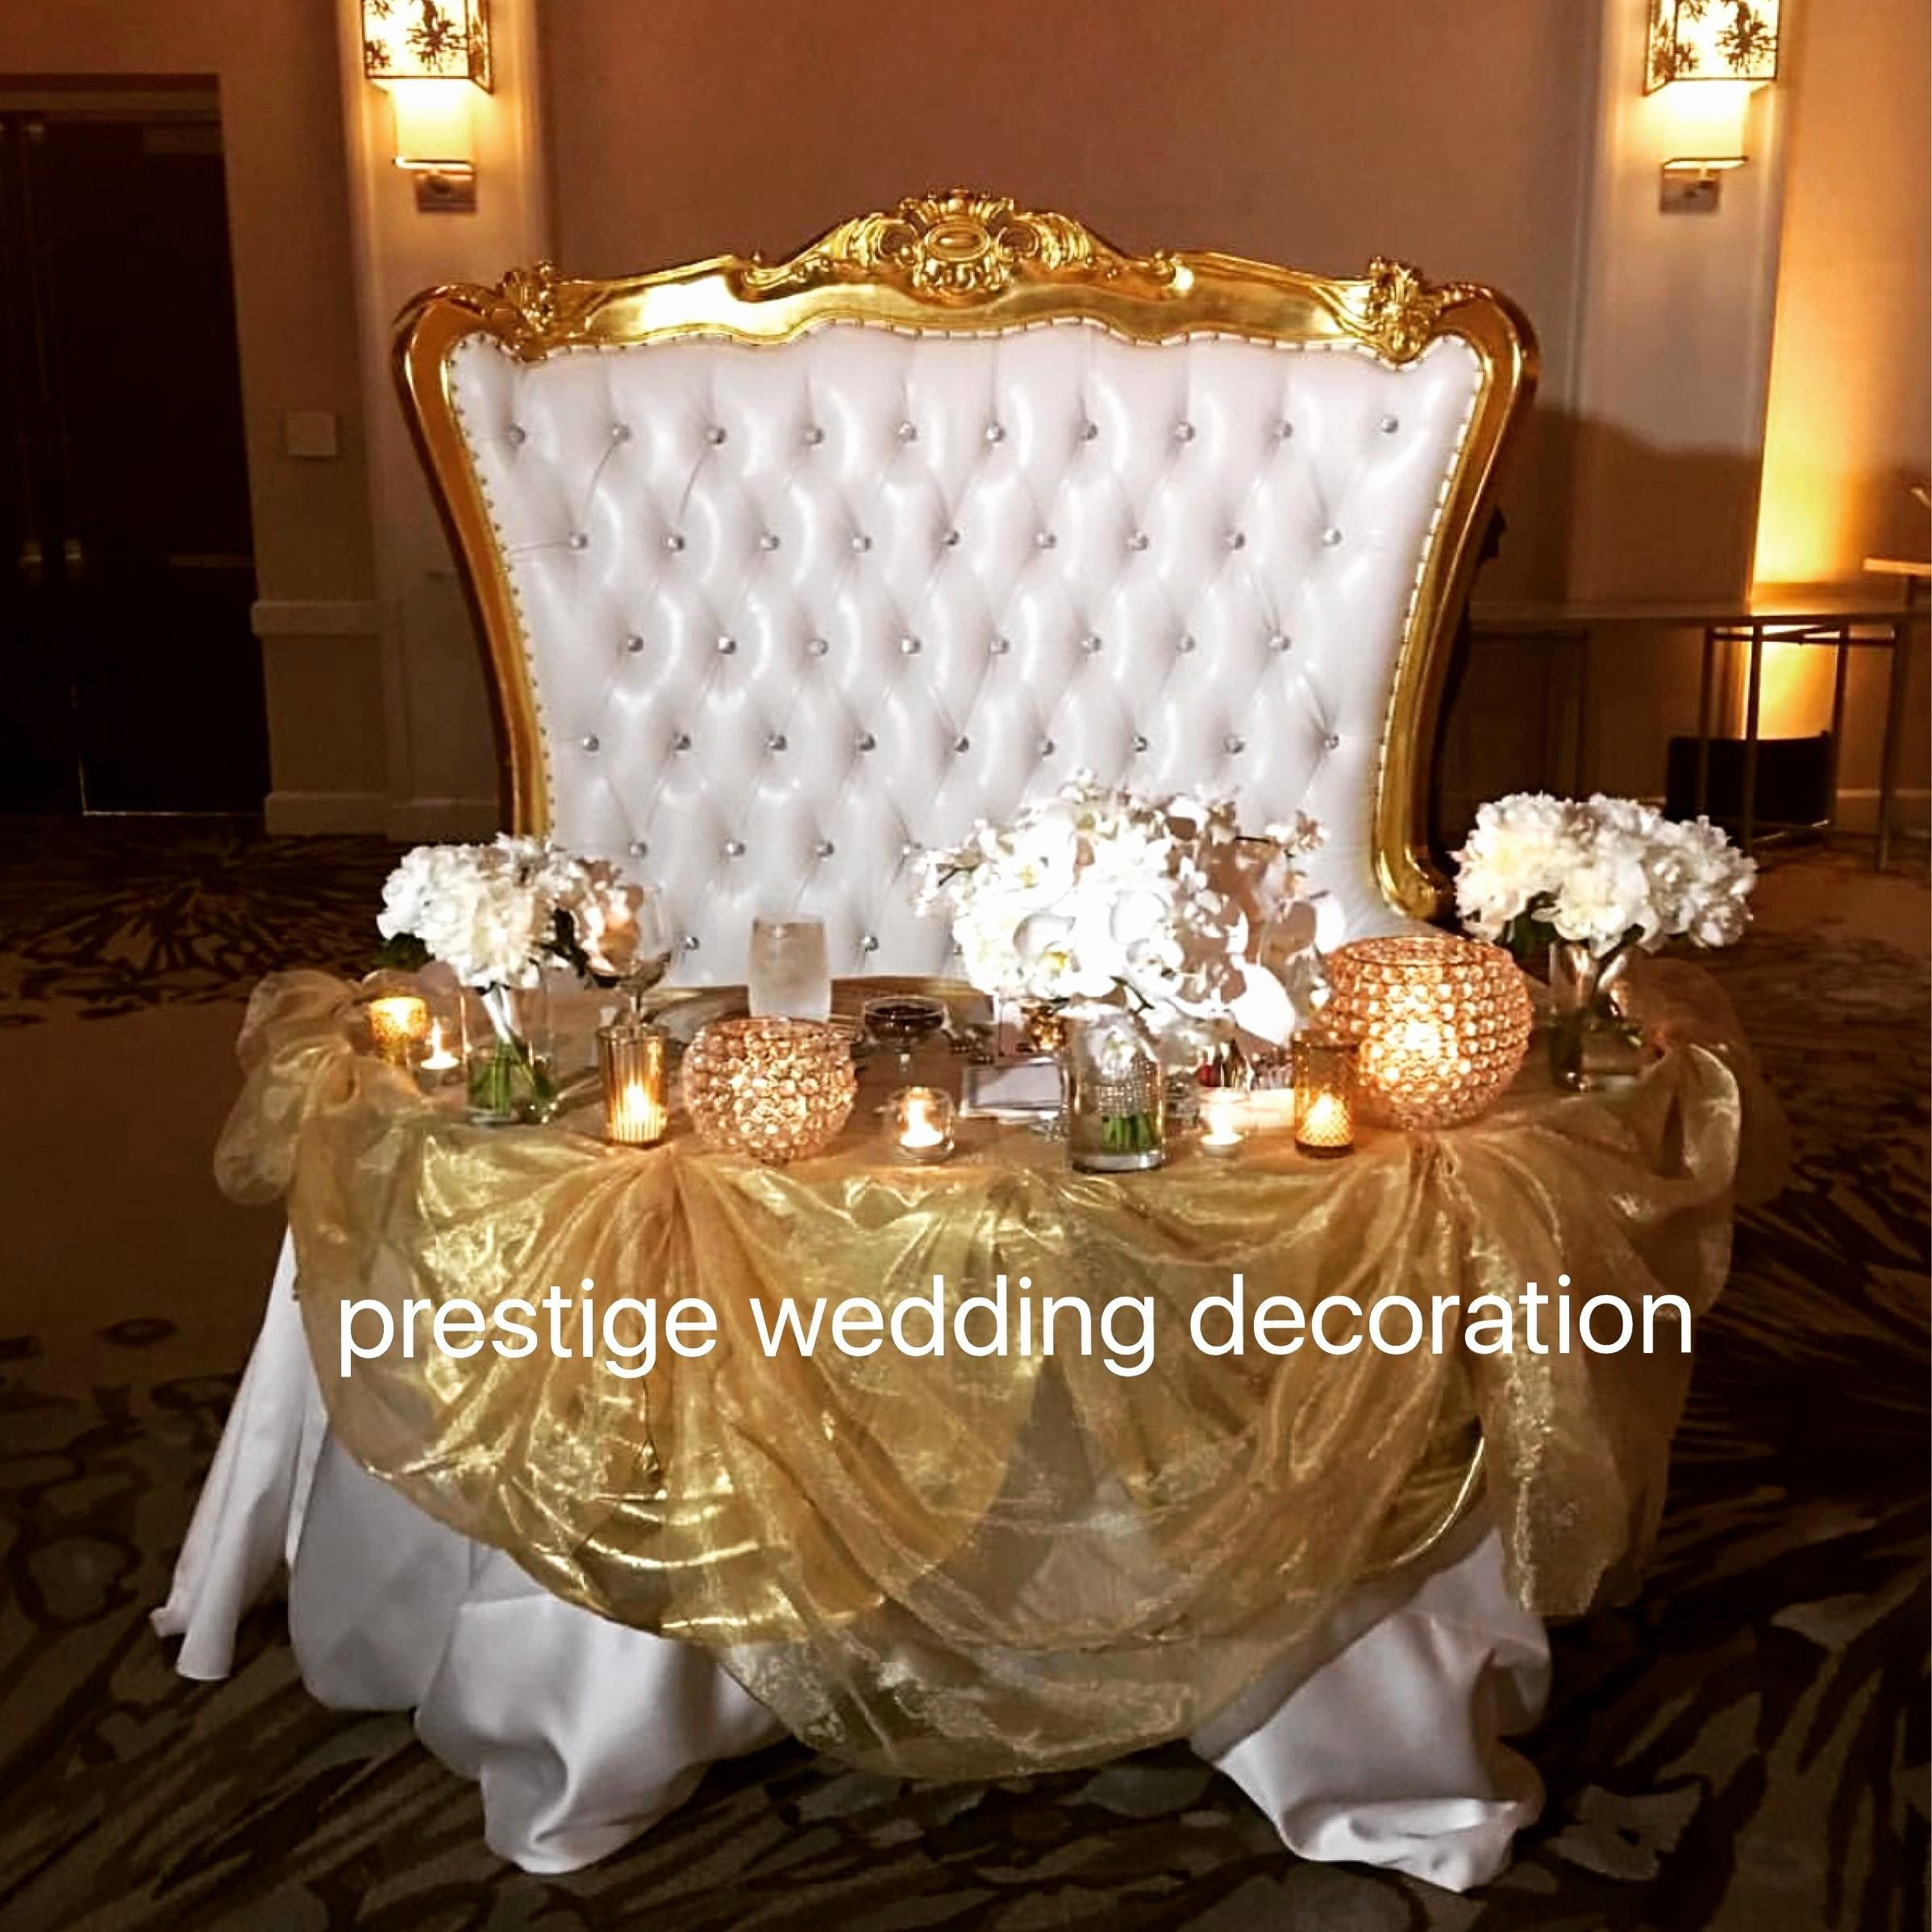 large vase filler ideas of 30 pearl vase fillers the weekly world within wedding entrance ideas elegant wedding decor by q events wedding